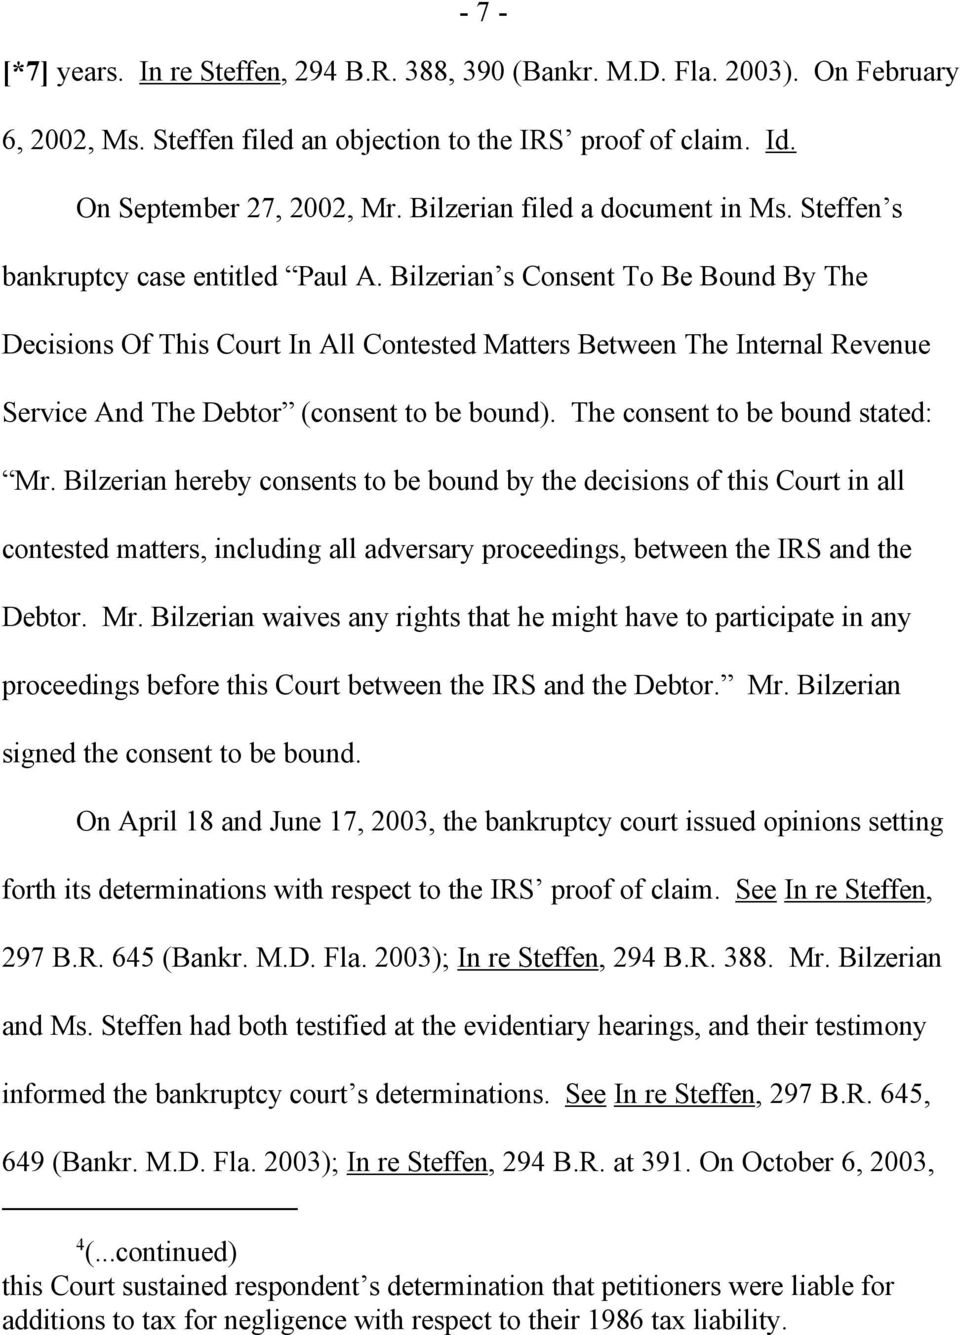 Bilzerian s Consent To Be Bound By The Decisions Of This Court In All Contested Matters Between The Internal Revenue Service And The Debtor (consent to be bound). The consent to be bound stated: Mr.